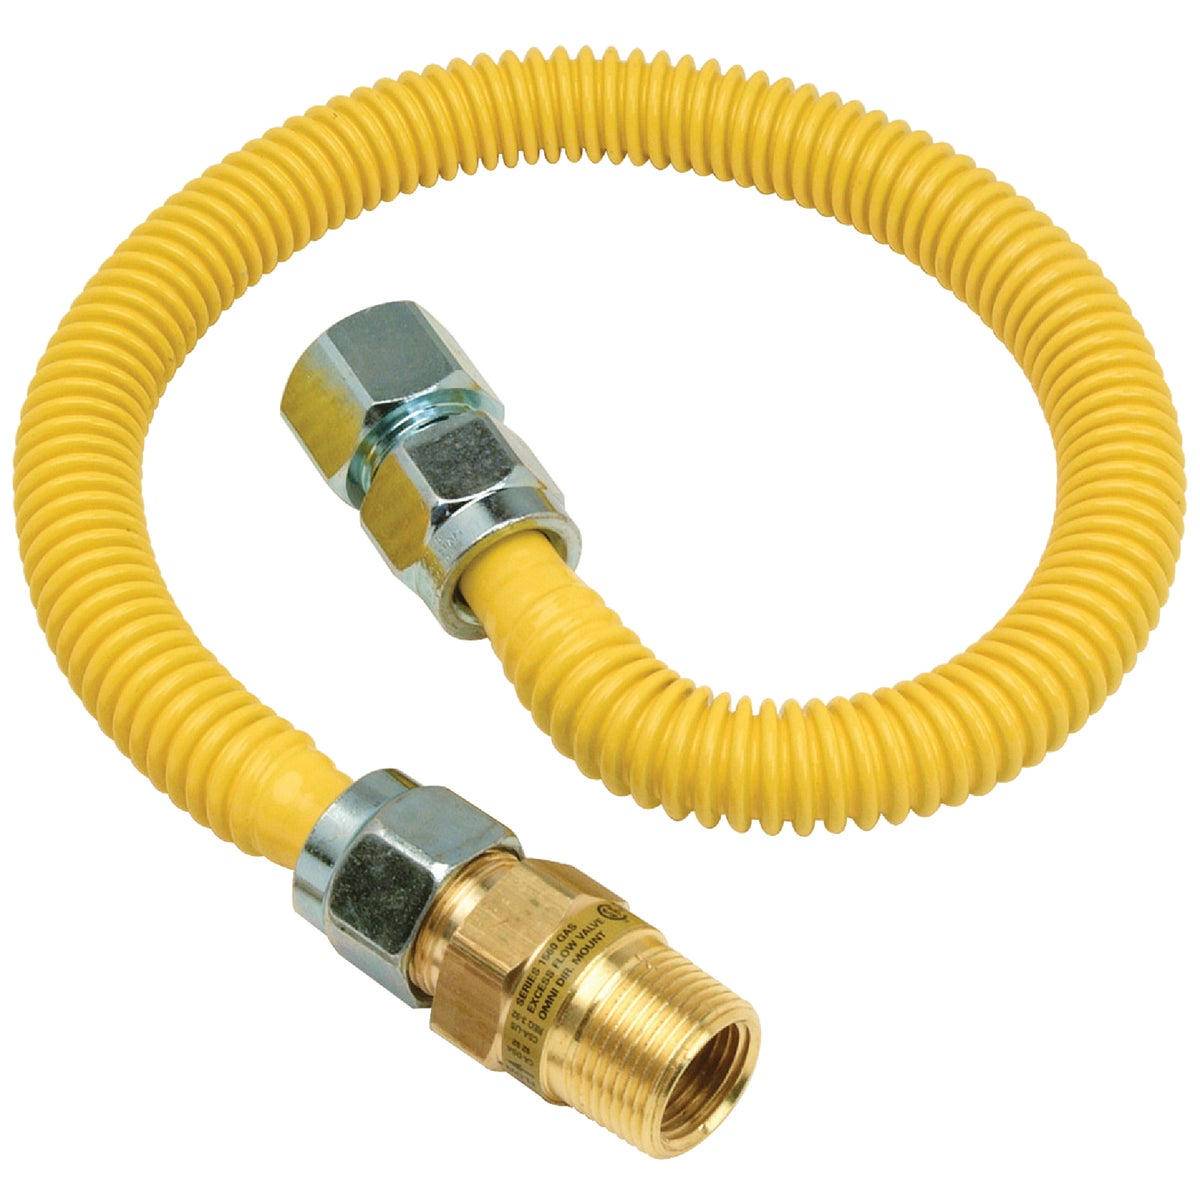 3/4X3/4-36 GAS CONNECTOR - CSSC12E-36P by Brass Craft